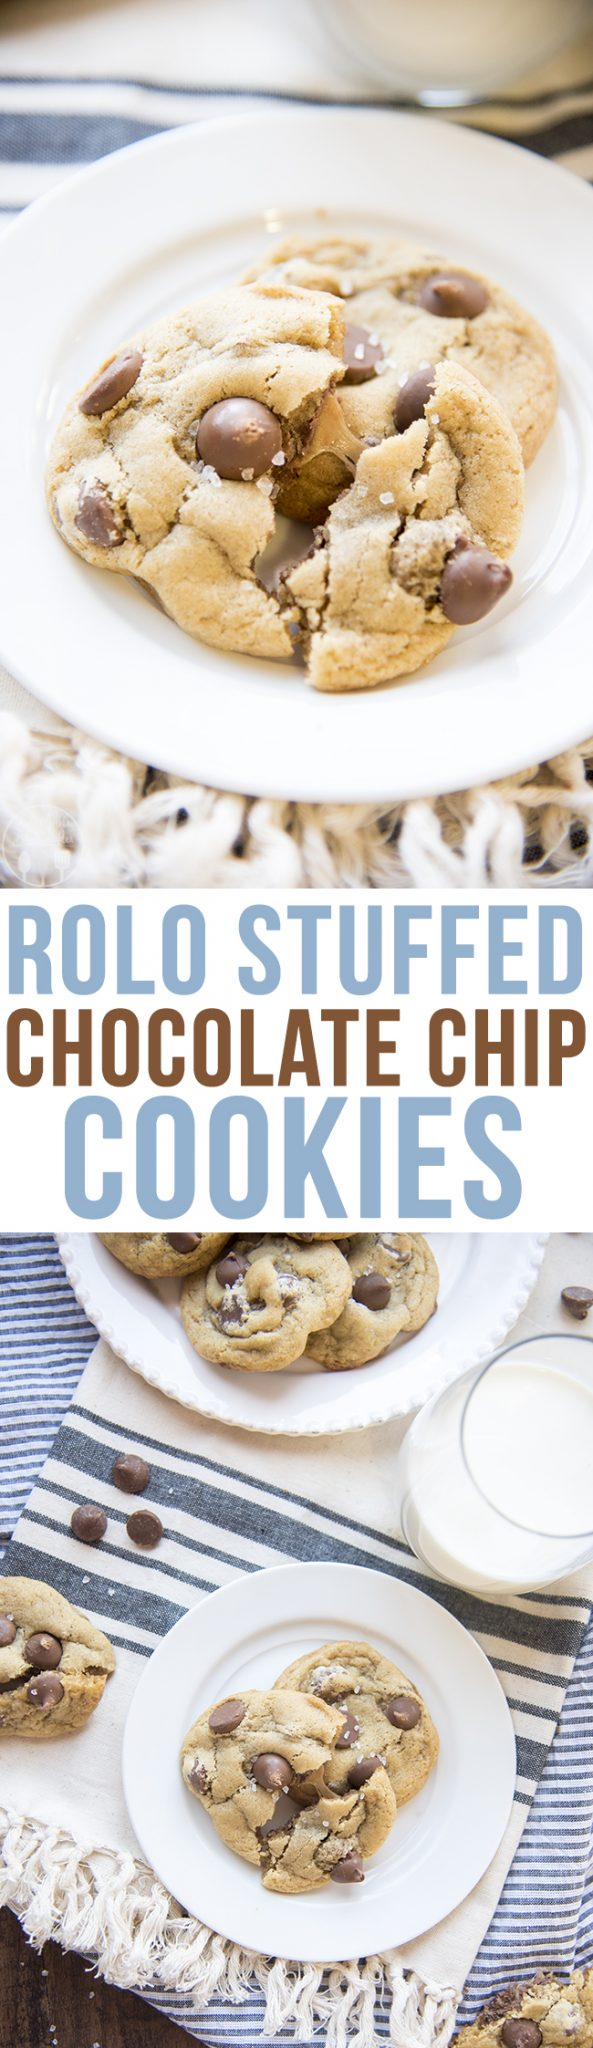 Rolo Stuffed Chocolate Chip Cookies - These rolo stuffed chocolate chip cookies are a perfect chocolate chip with a gooey caramel rolo in the middle and topped with sea salt for the perfect cookie!